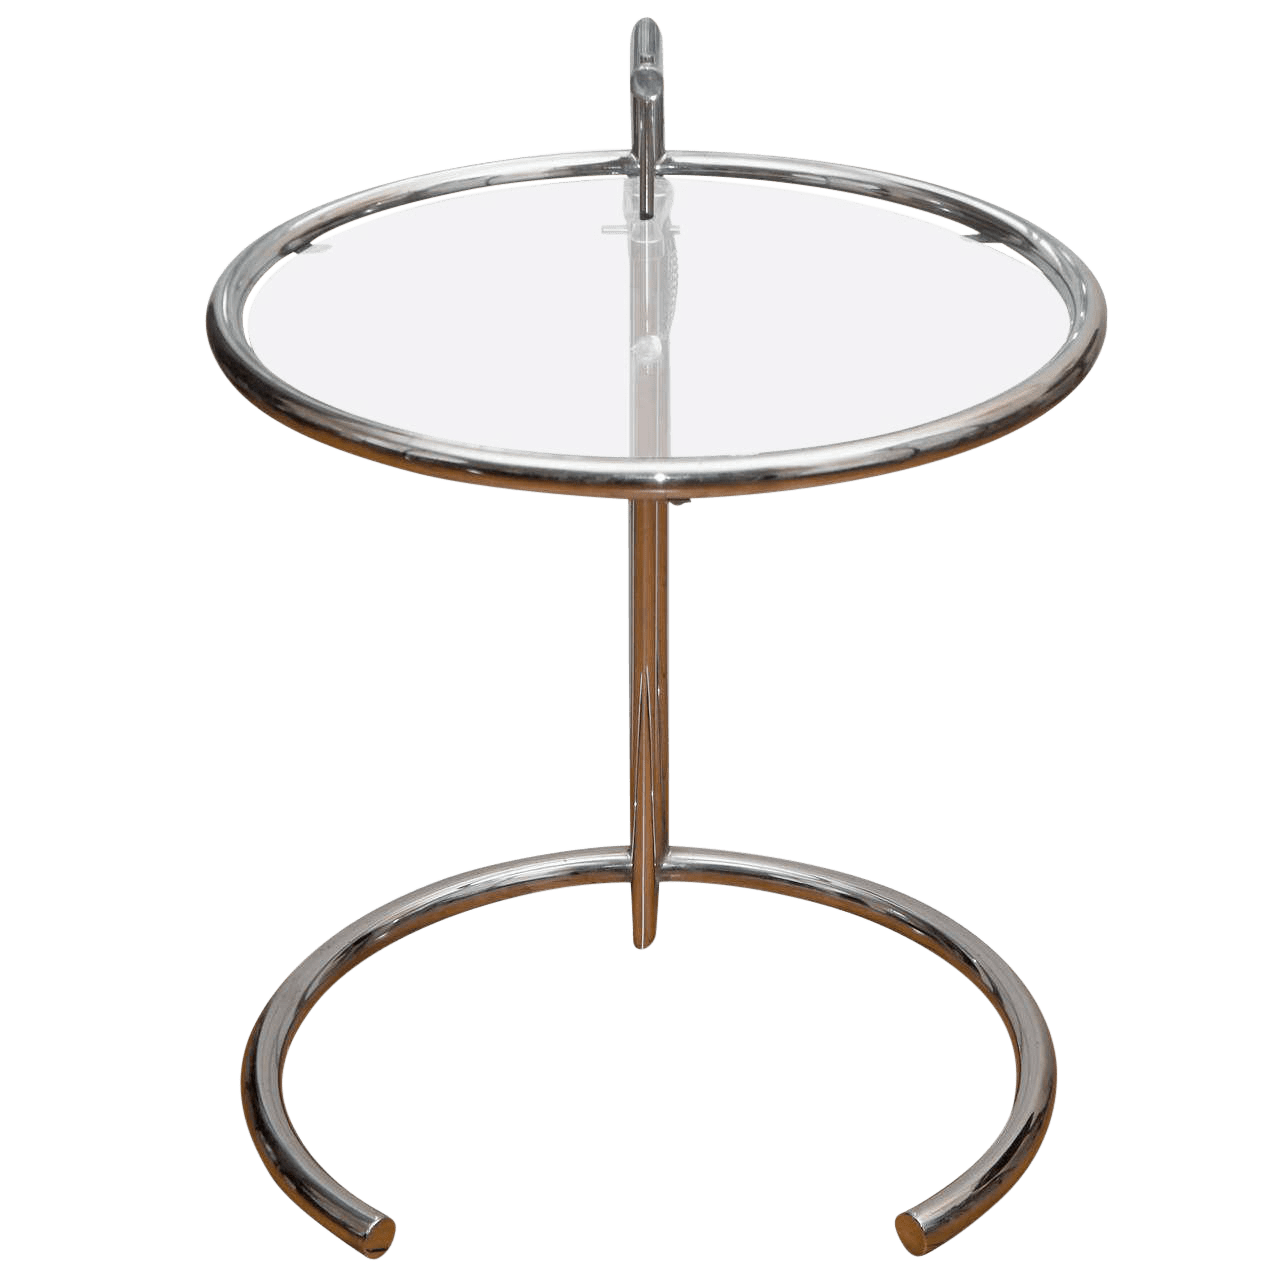 Eileen Gray Table Eileen Gray Chrome Glass Adjustable Table